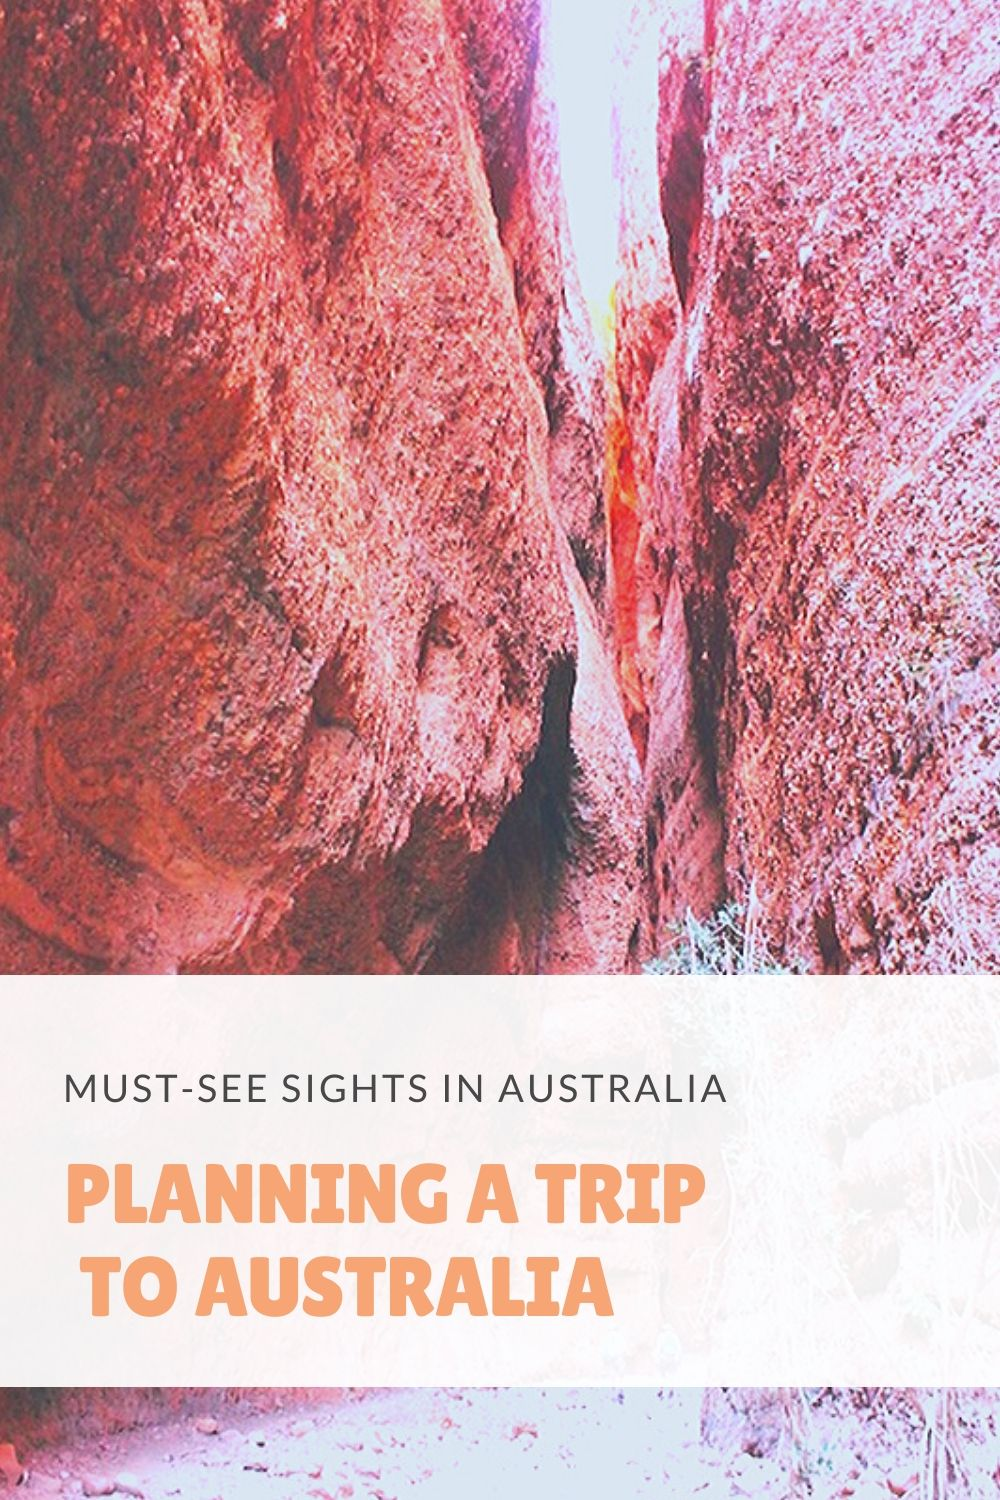 Planning a Trip to Australia